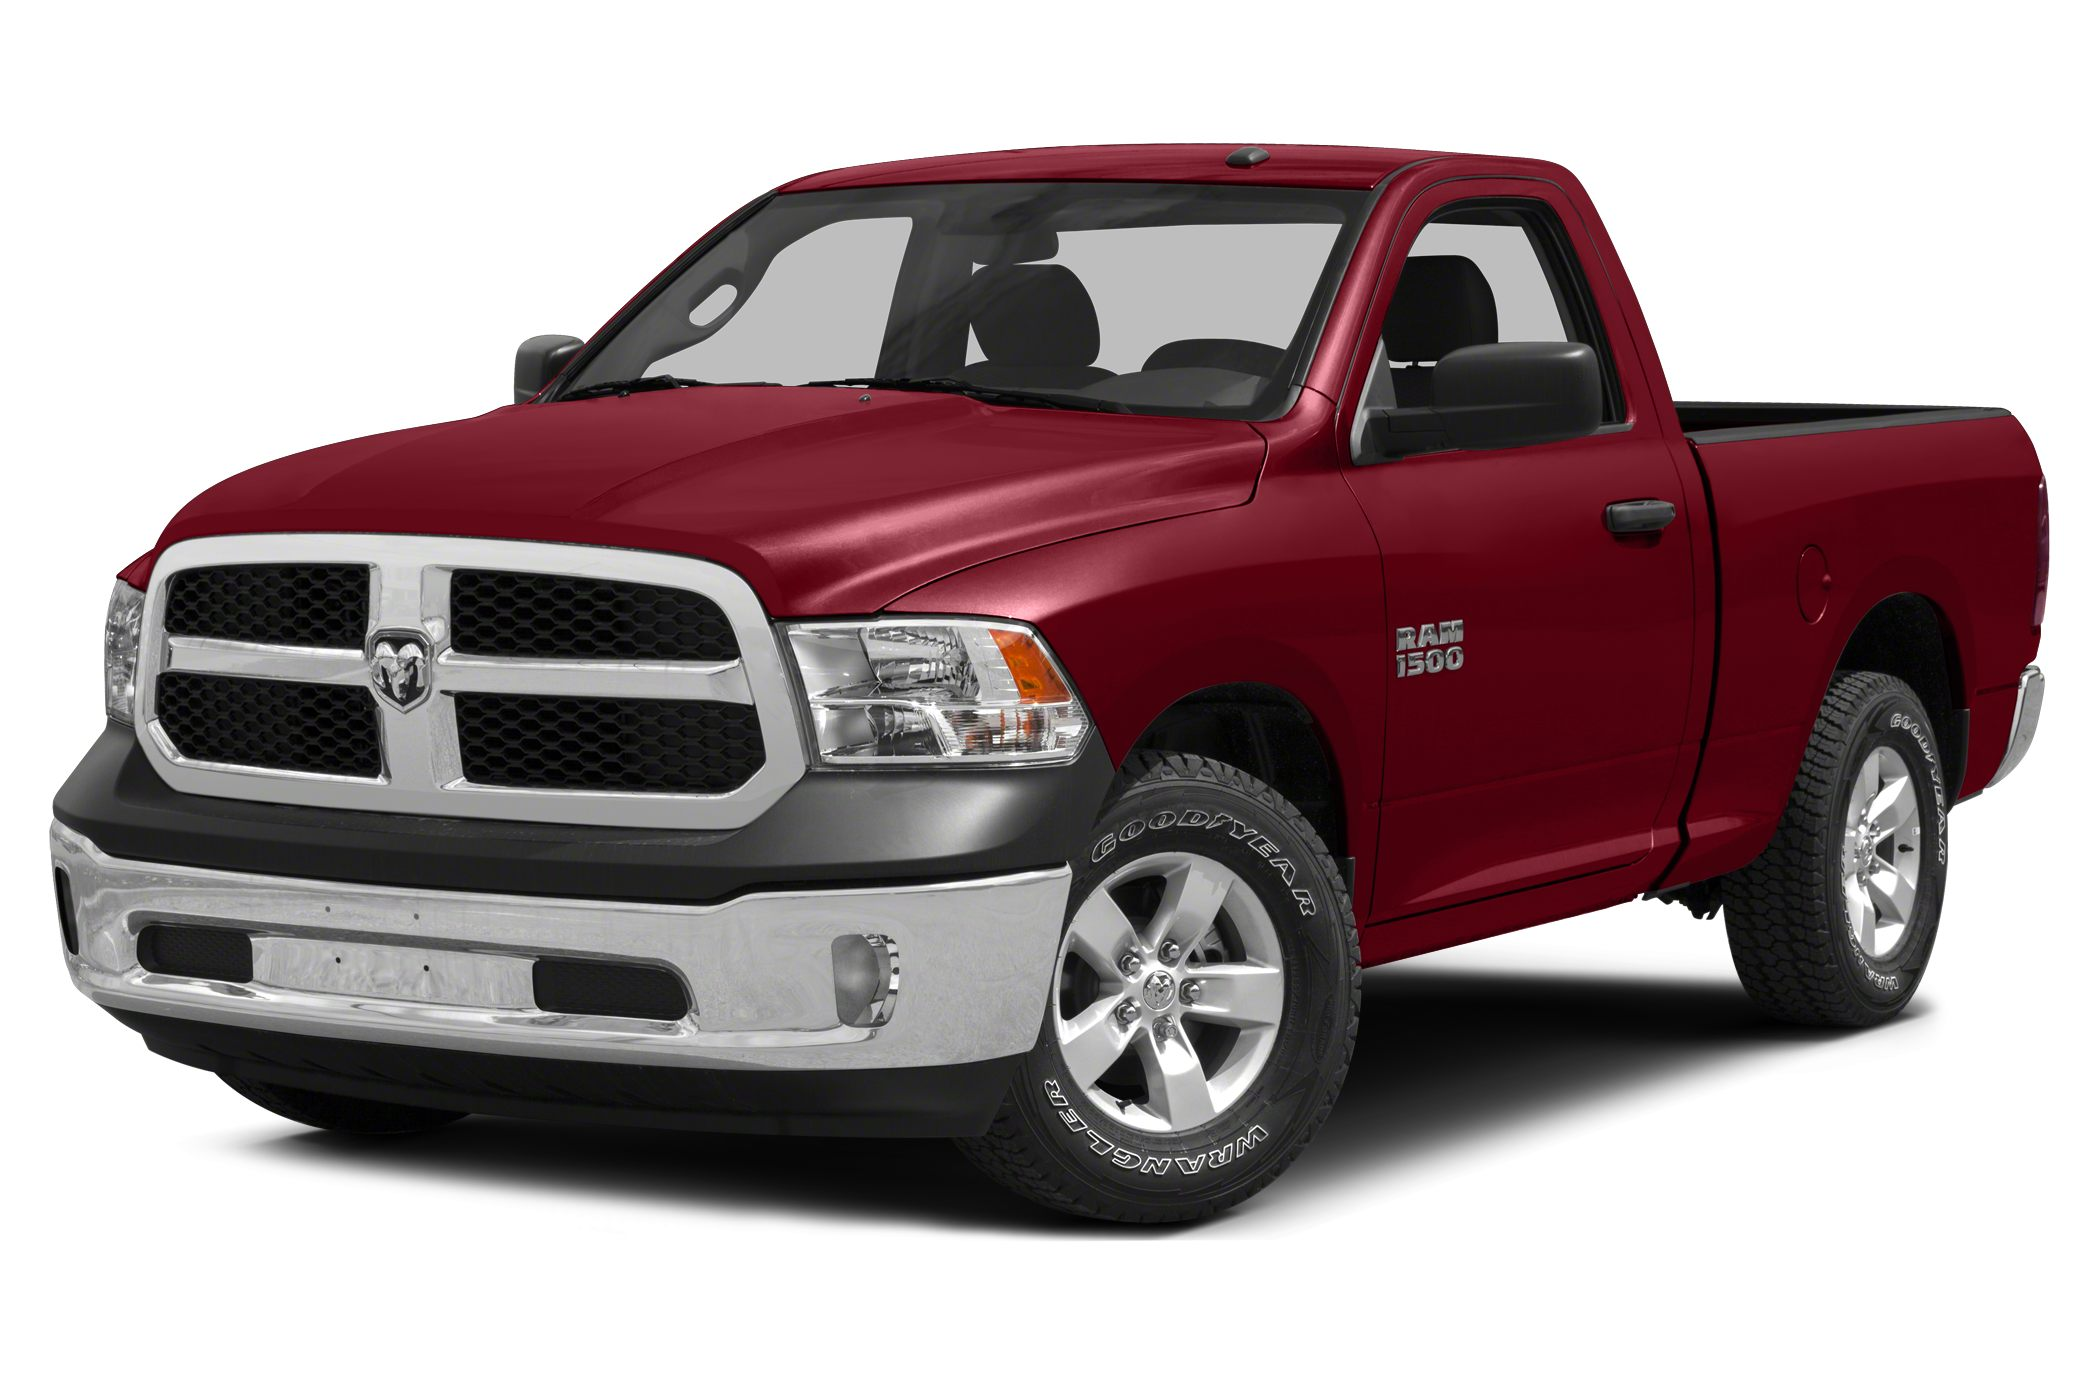 2013 RAM 1500 SLT Crew Cab Pickup for sale in Garner for $0 with 34,030 miles